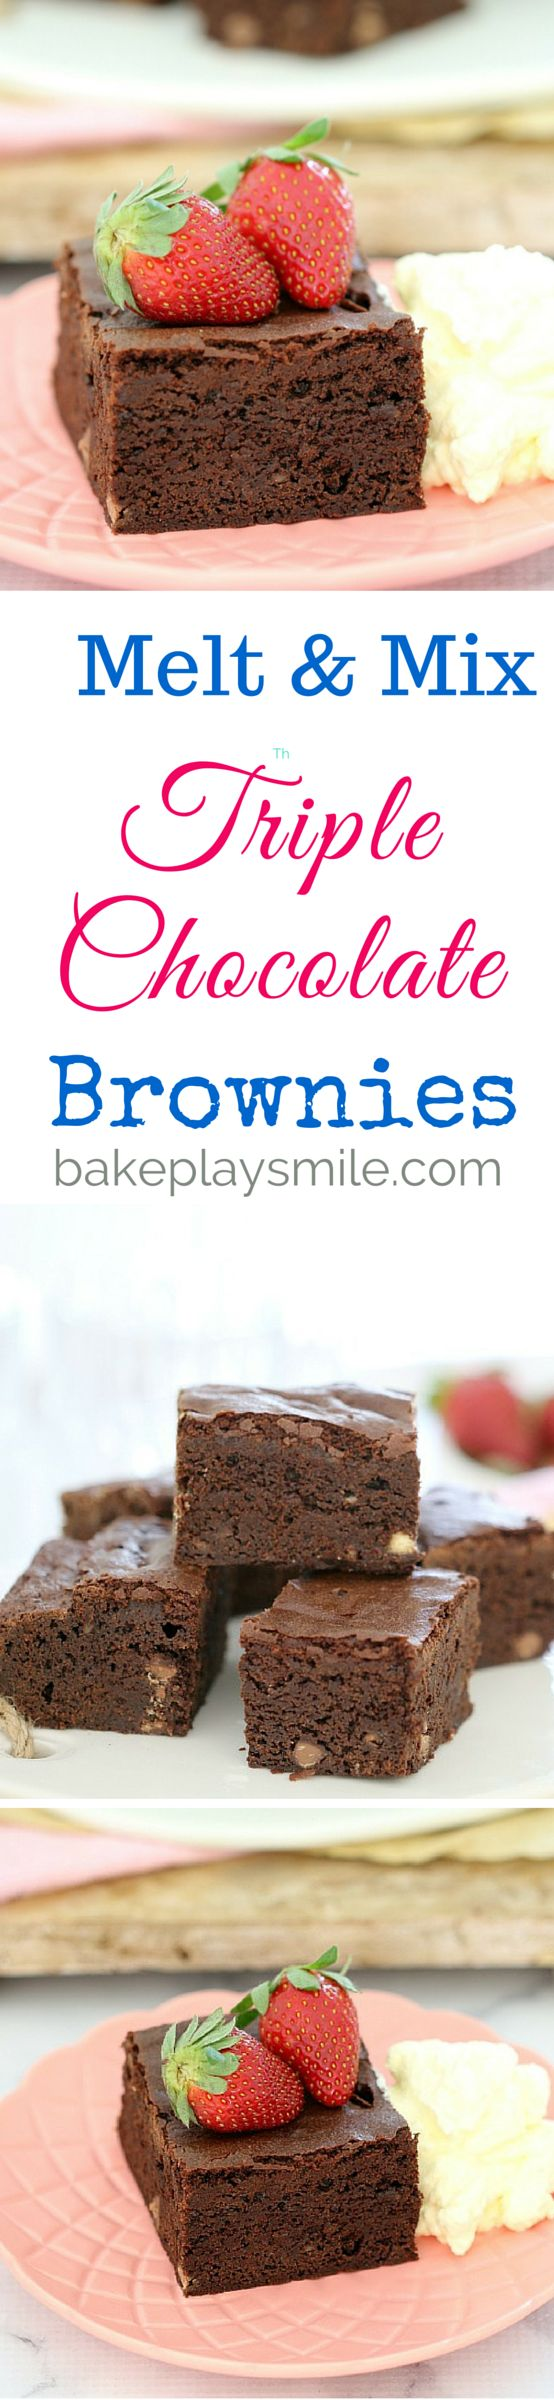 Seriously moist and decadently rich! These Thermomix Melt & Mix Triple Chocolate Brownies are enough to satisfy even the biggest chocoholics out there! #easy #chocolate #brownies #triplechocolate #recipe #conventional #thermomix